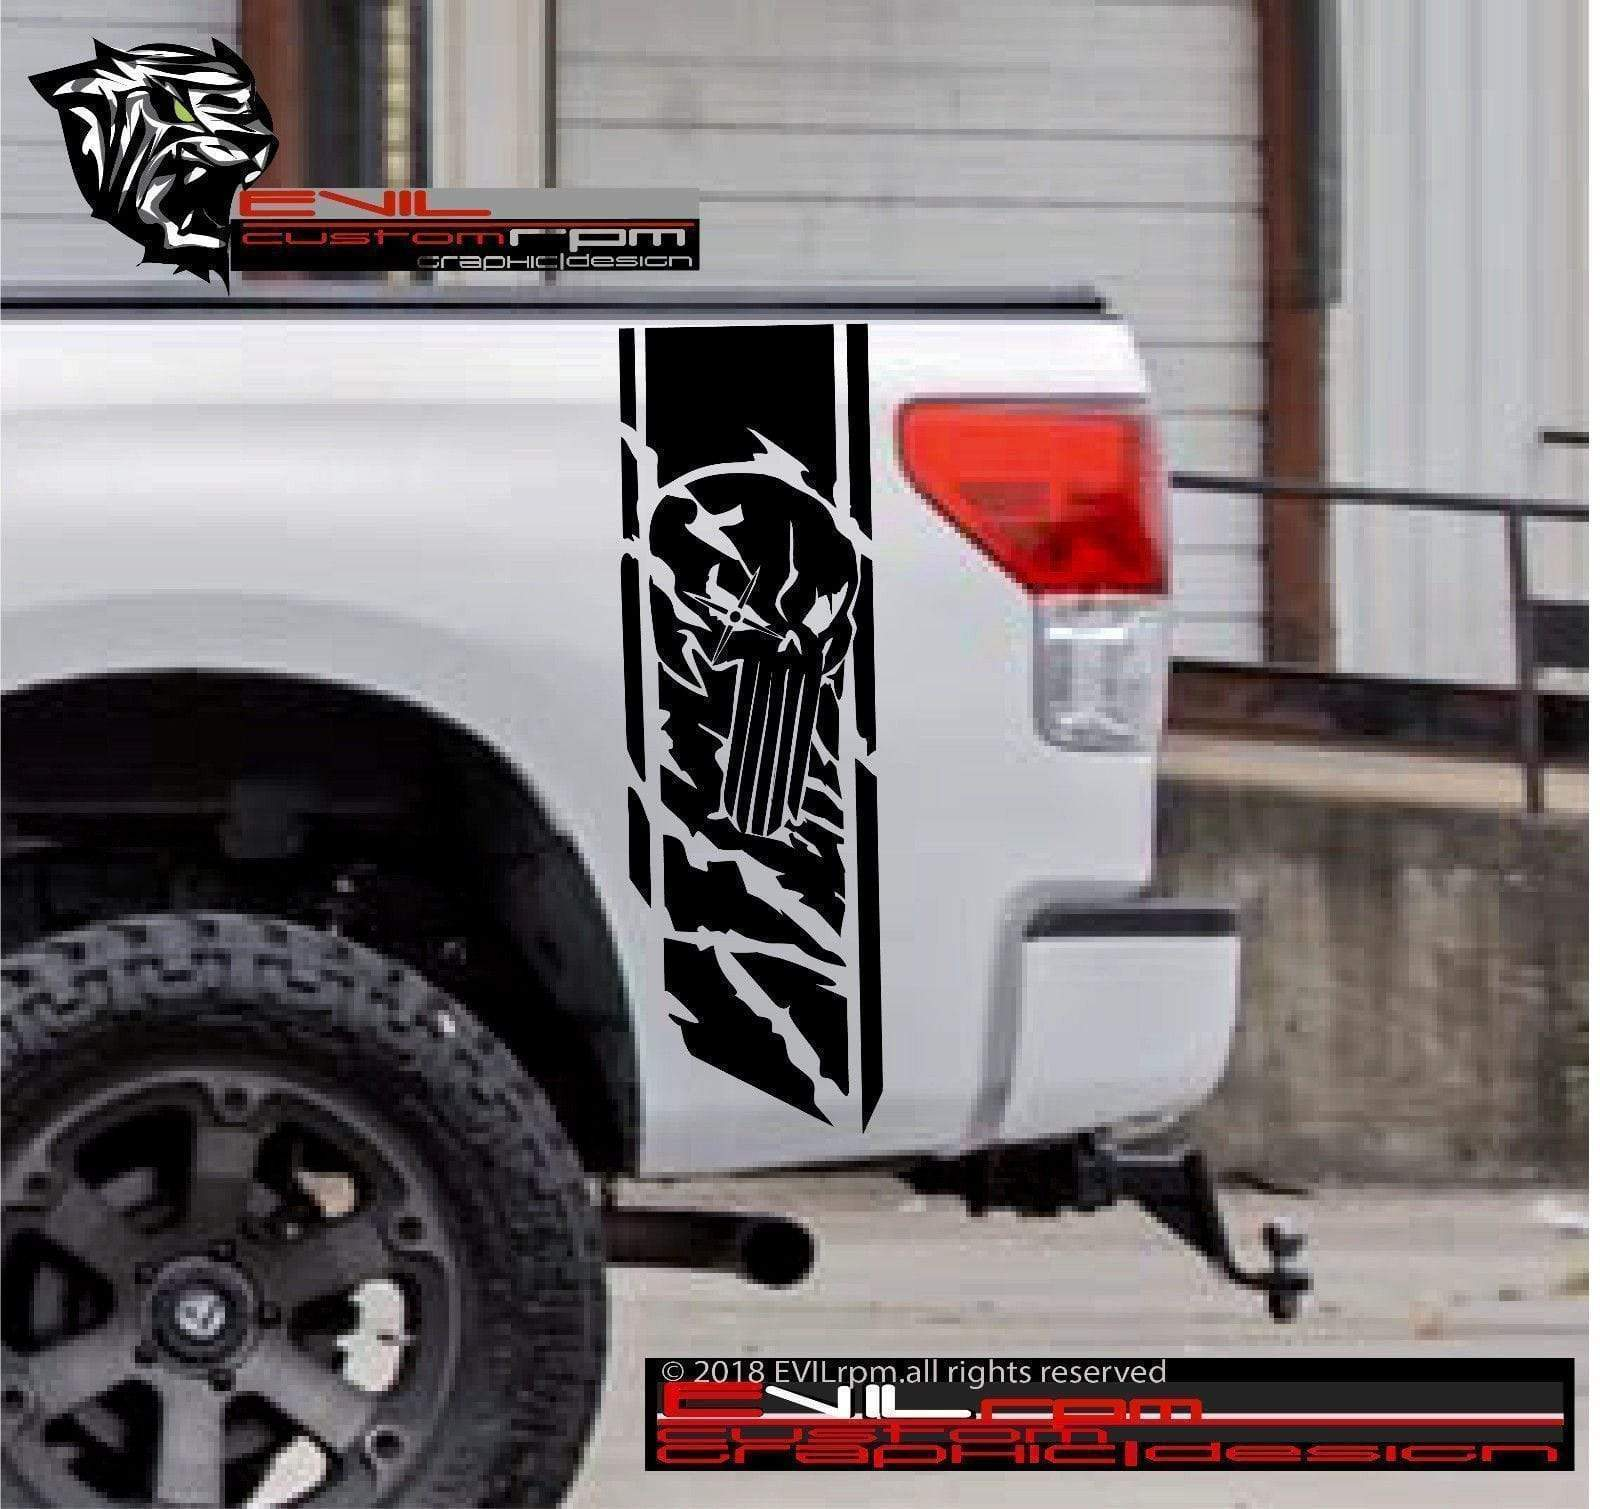 Punisher Side Bed Vinyl Decal Stripes  forToyota Tundra Pickup Truck Evilrpm